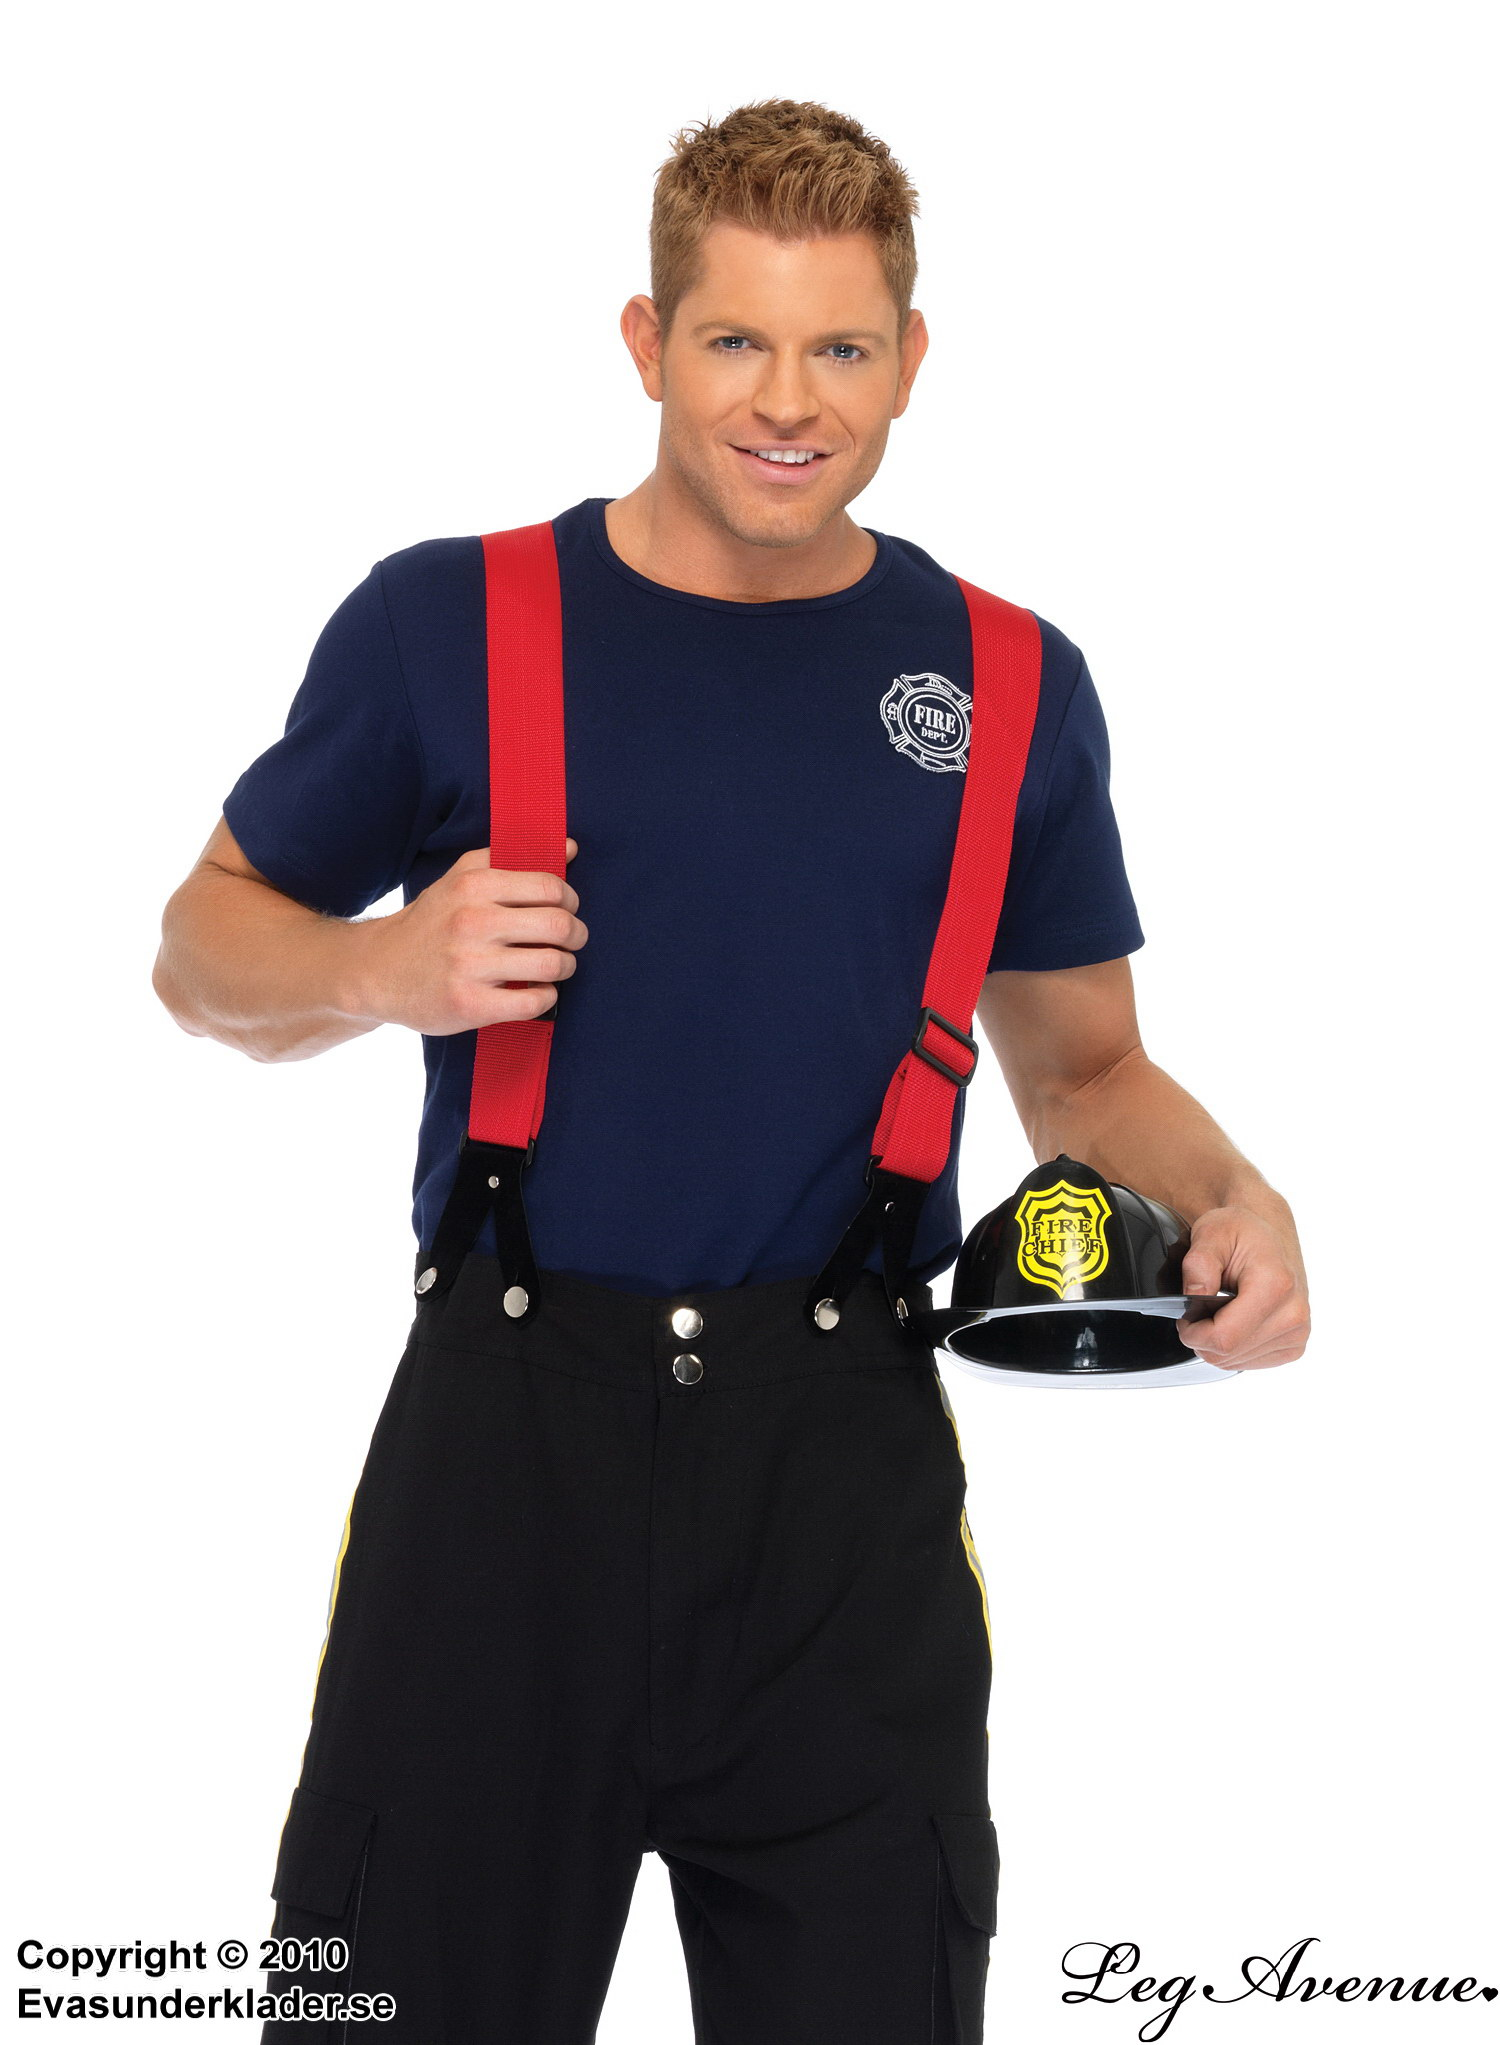 Fire fighter, t-shirt and pants costume, suspenders